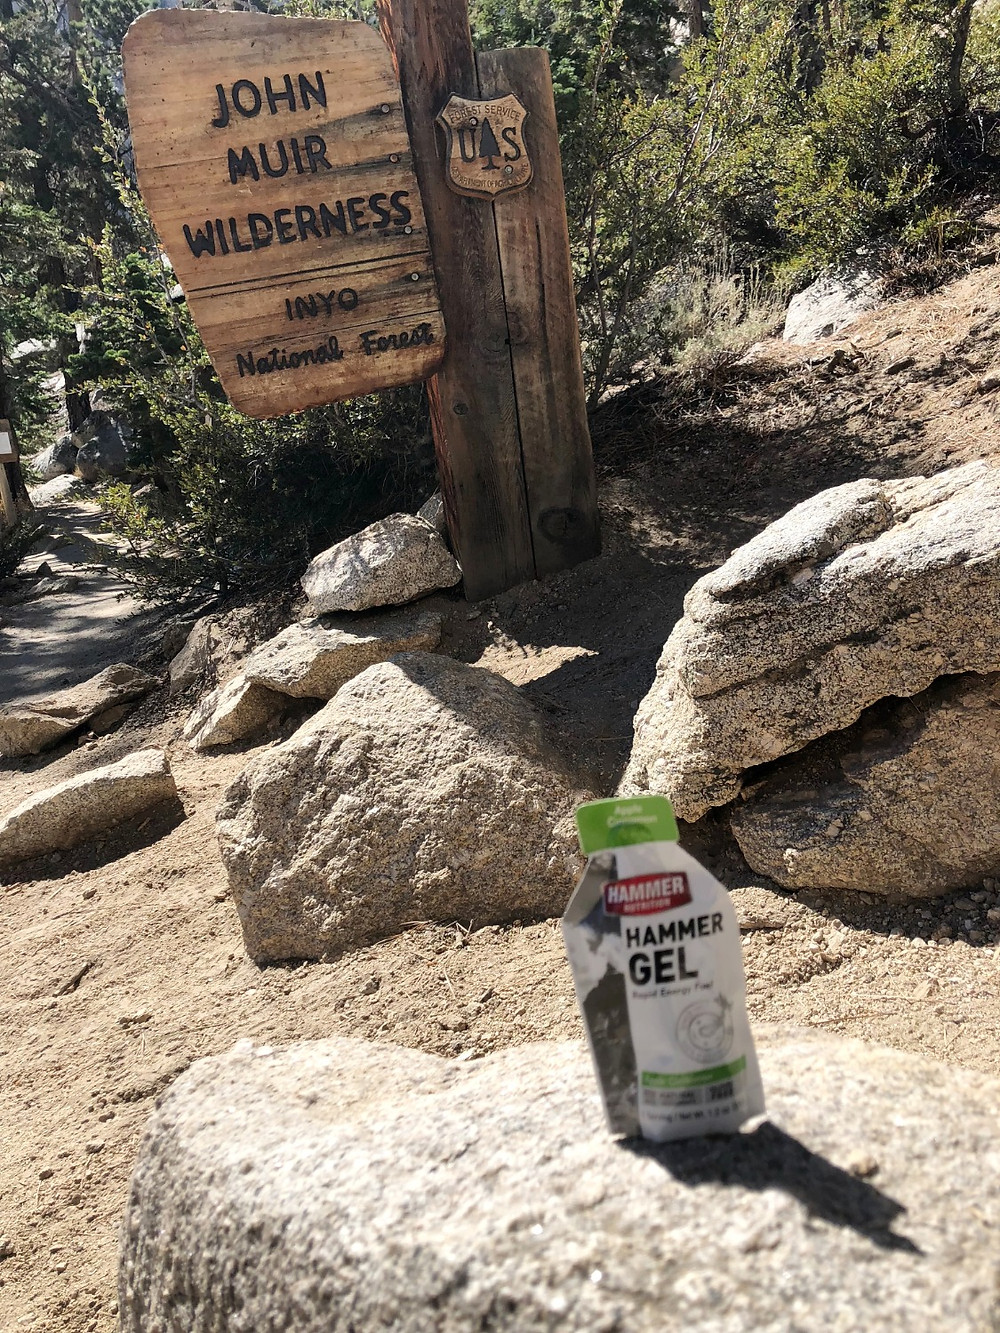 John Muir Wilderness Trail | Mt. Whitney | Hammer Nutrition | Hammer Gel